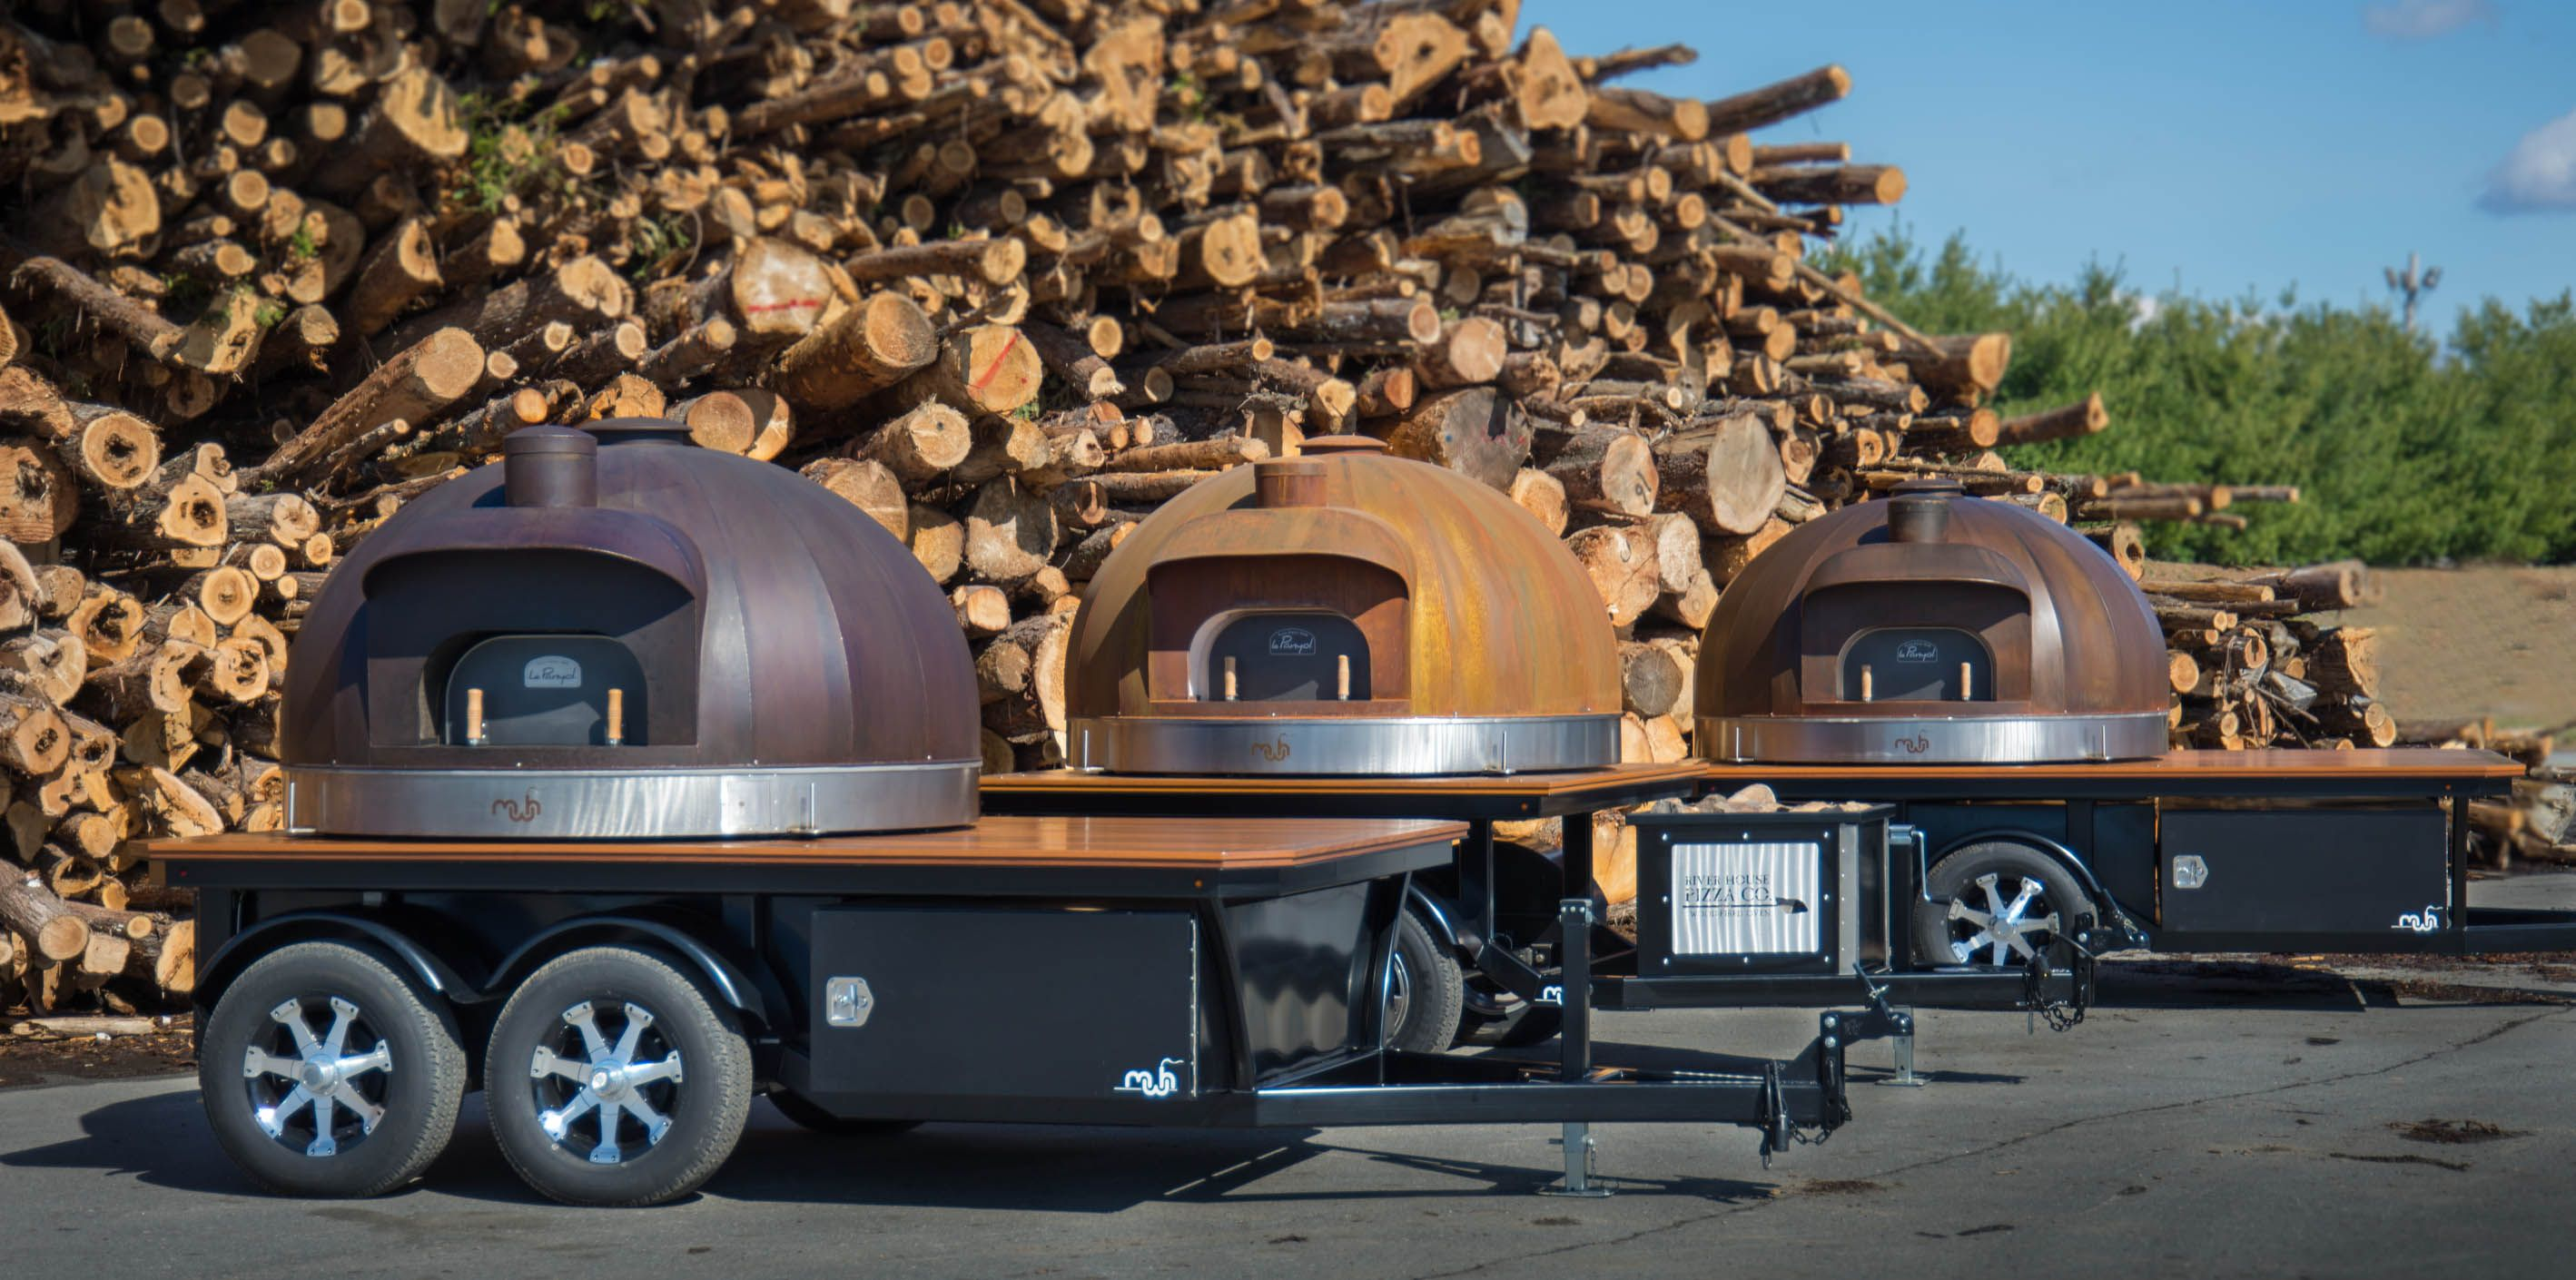 Portable wood fired pizza oven for sale - Corten Steel Mobile Oven Wood Fired Oven Oven Trio Le Panyol Made By